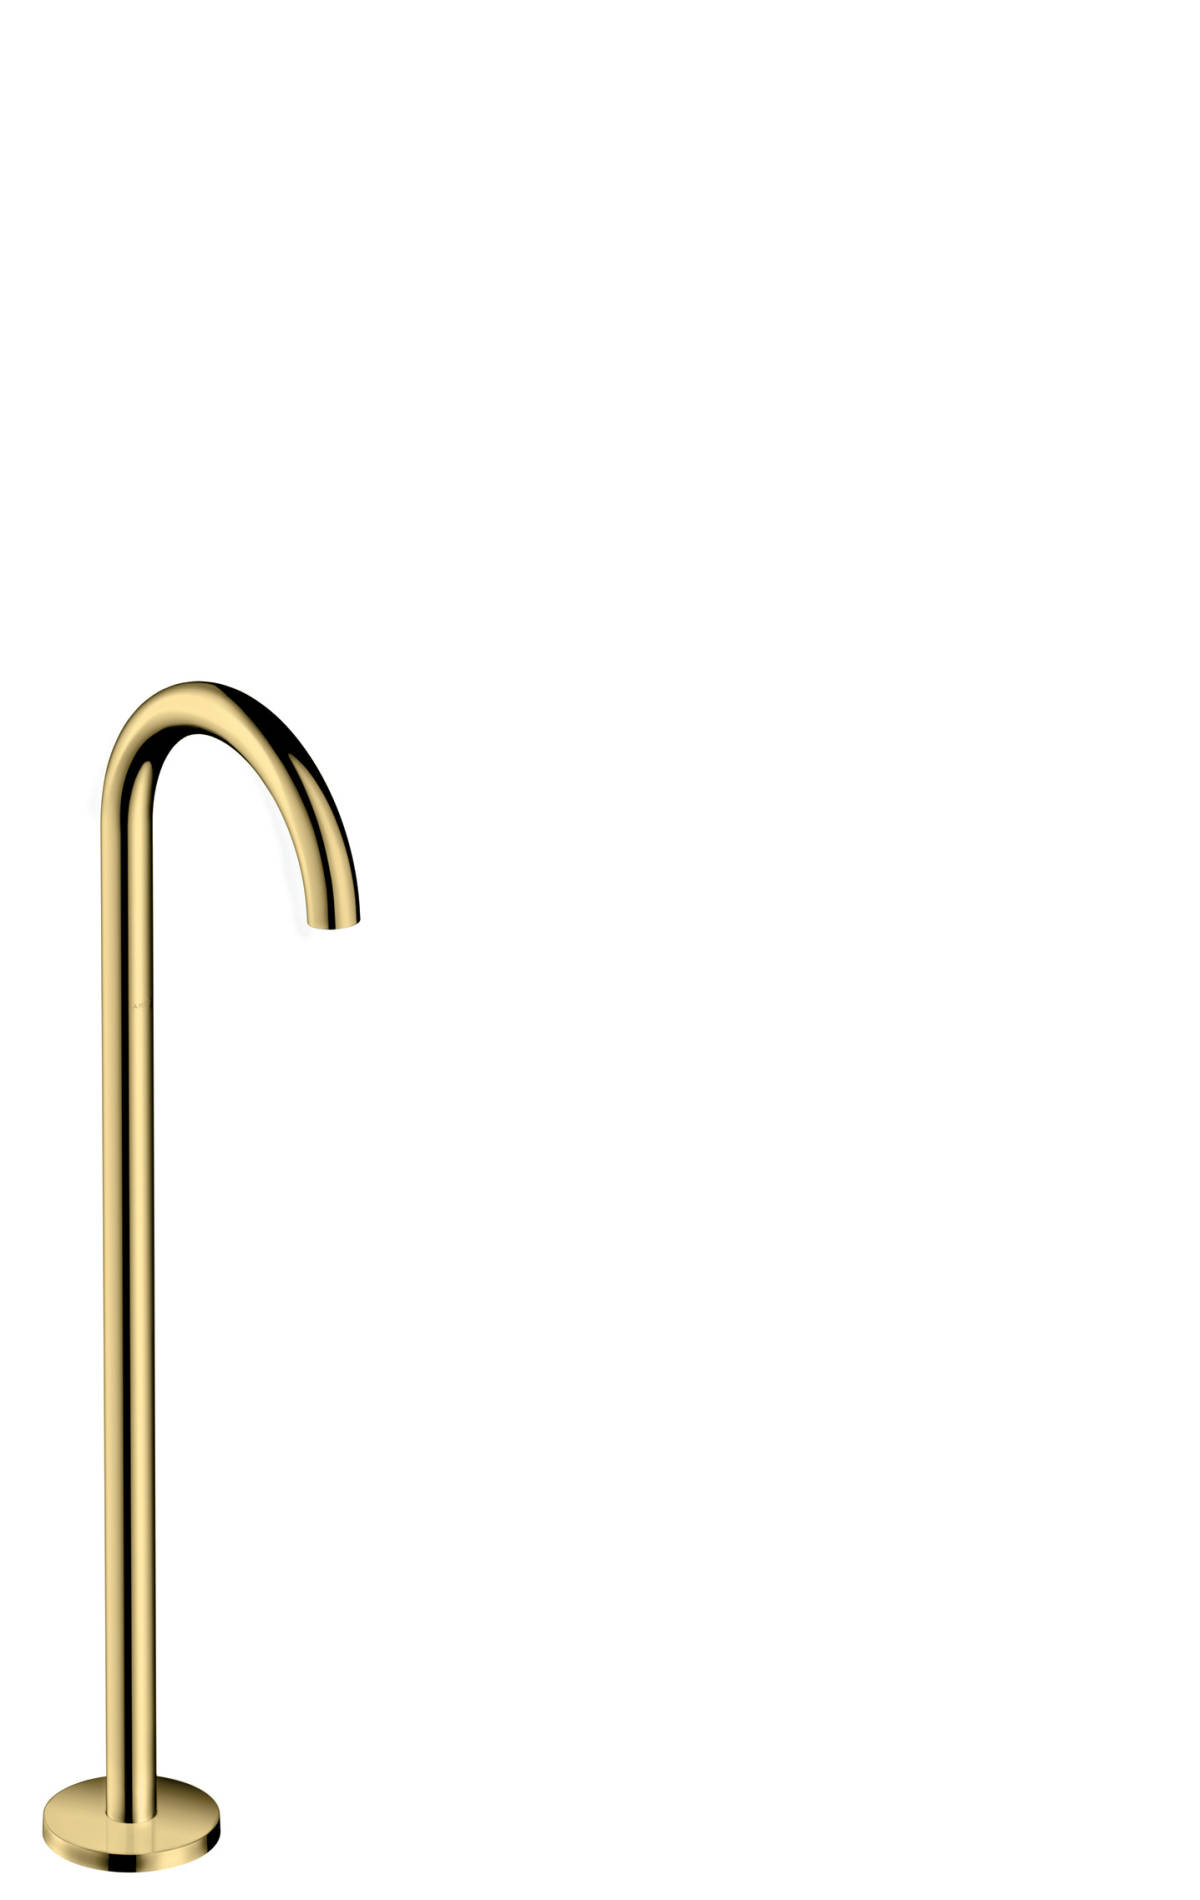 Bath spout curved floor-standing, Polished Brass, 38412930